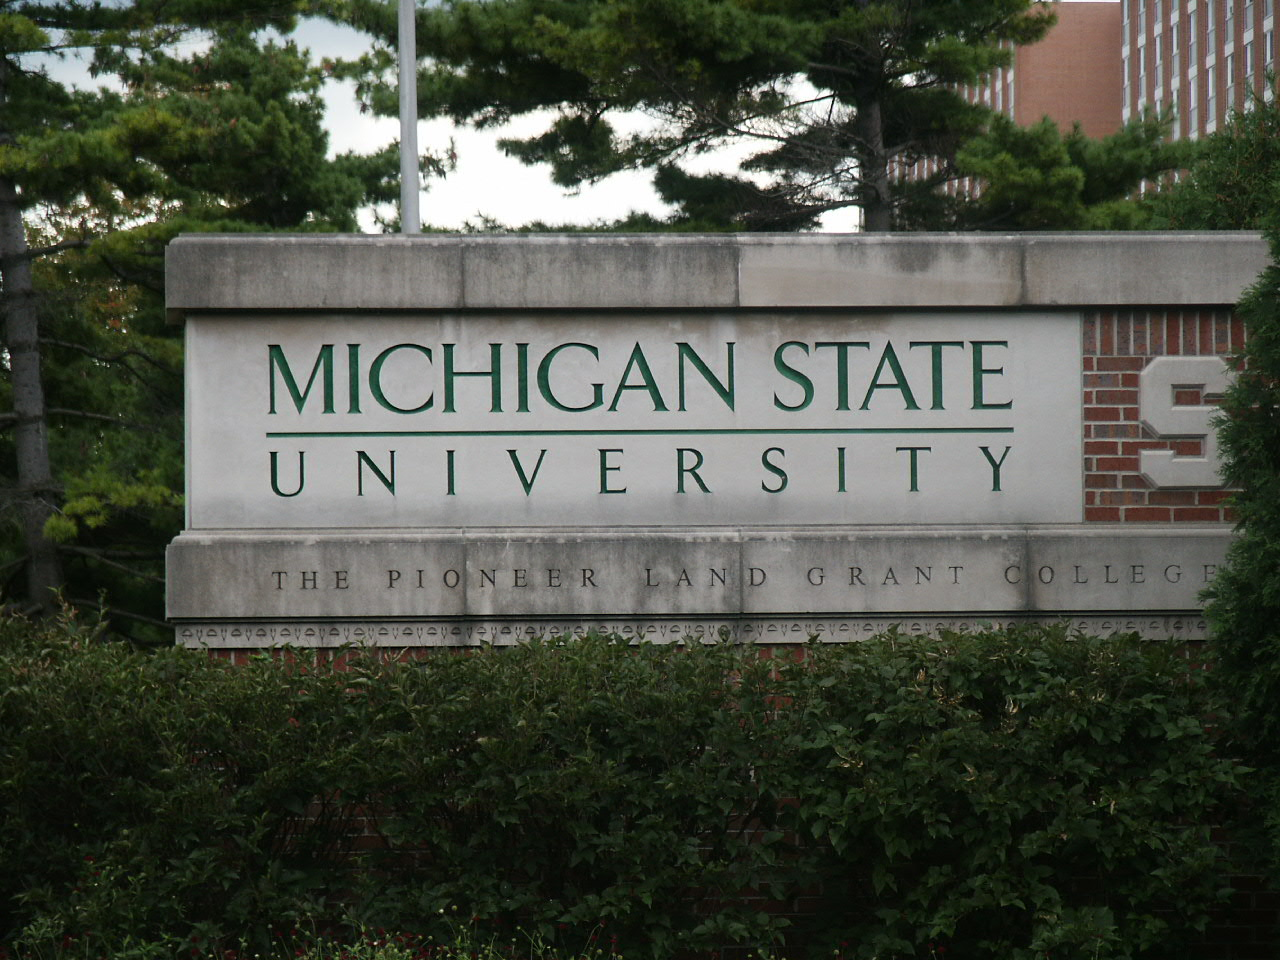 https://assets.sourcemedia.com/d8/0d/24304bff4250924ddd068f7936e9/michigan-state-university-sign.JPG